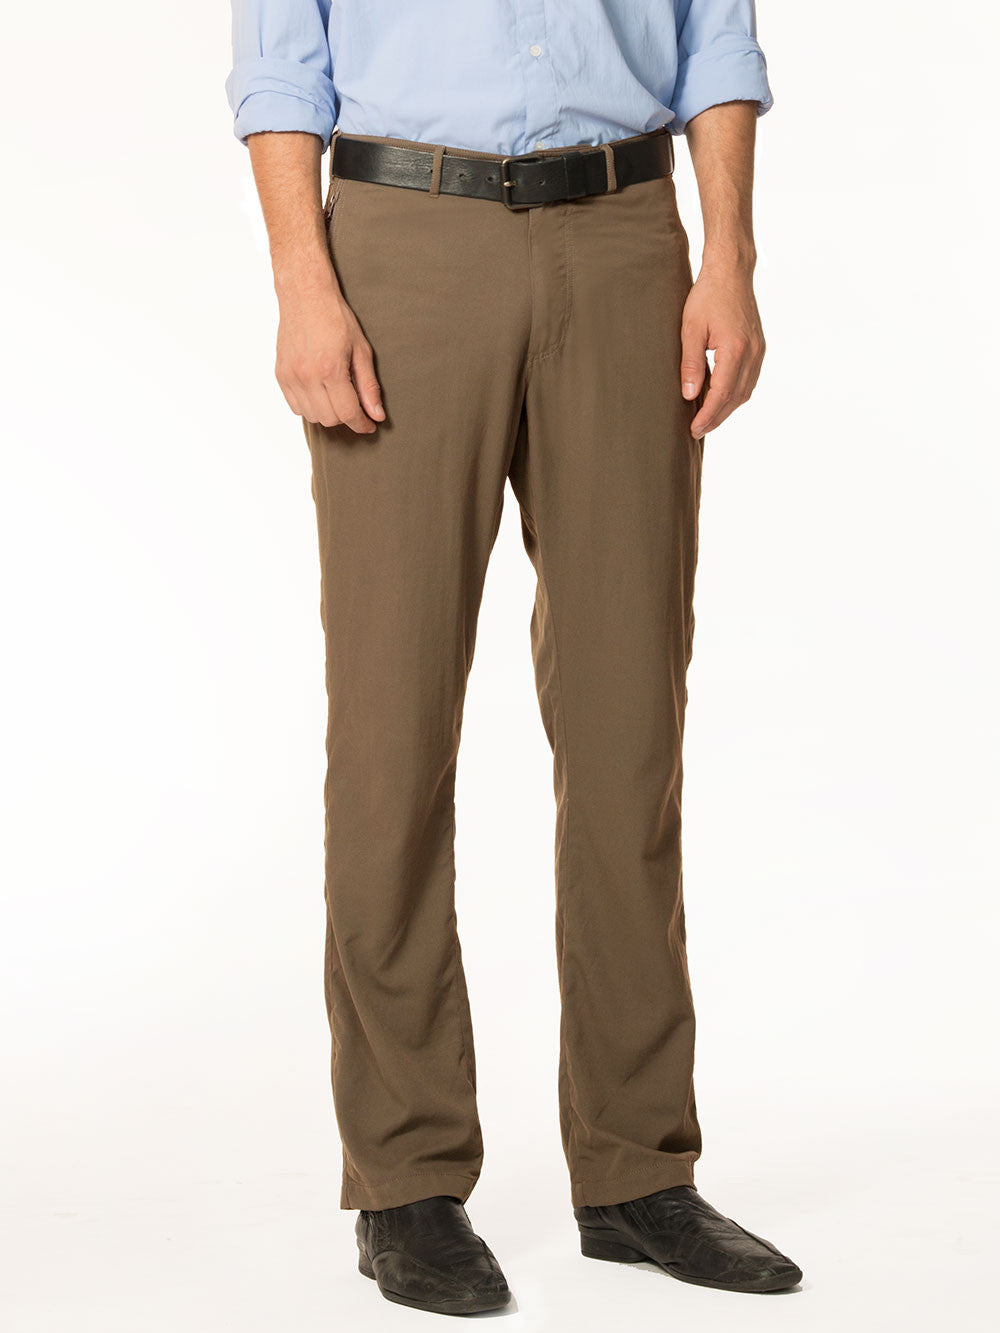 Summer business casual means looking well-put together while staying cool and that's just what a pair of wool and linen blended pants do. These pants can easily be the base of a casual outfit, just pair them with a trim polo shirt and a noticeable lack of socks.